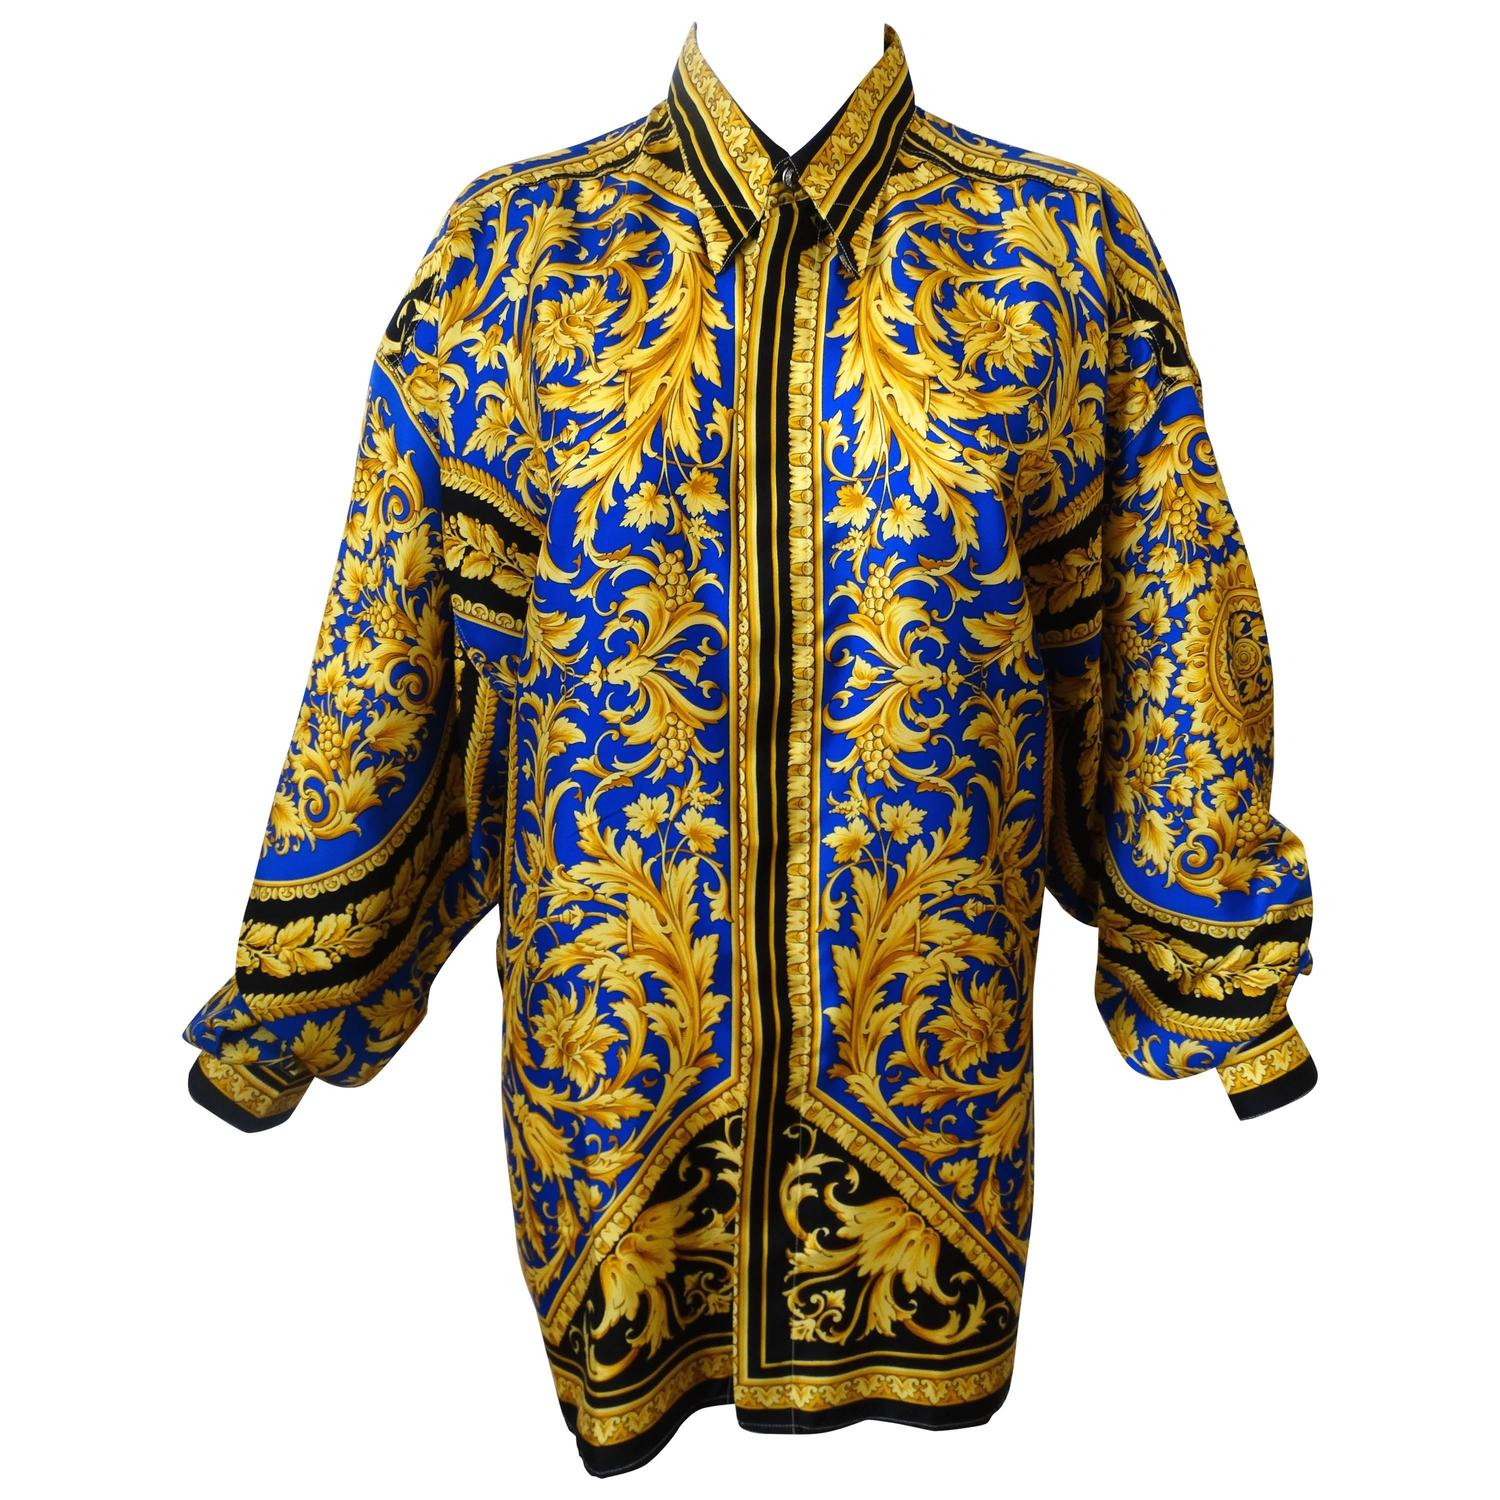 36cd21b2 1994 VERSACE CLASSIC V2 Silk Shirt BAROCCO print at 1stdibs